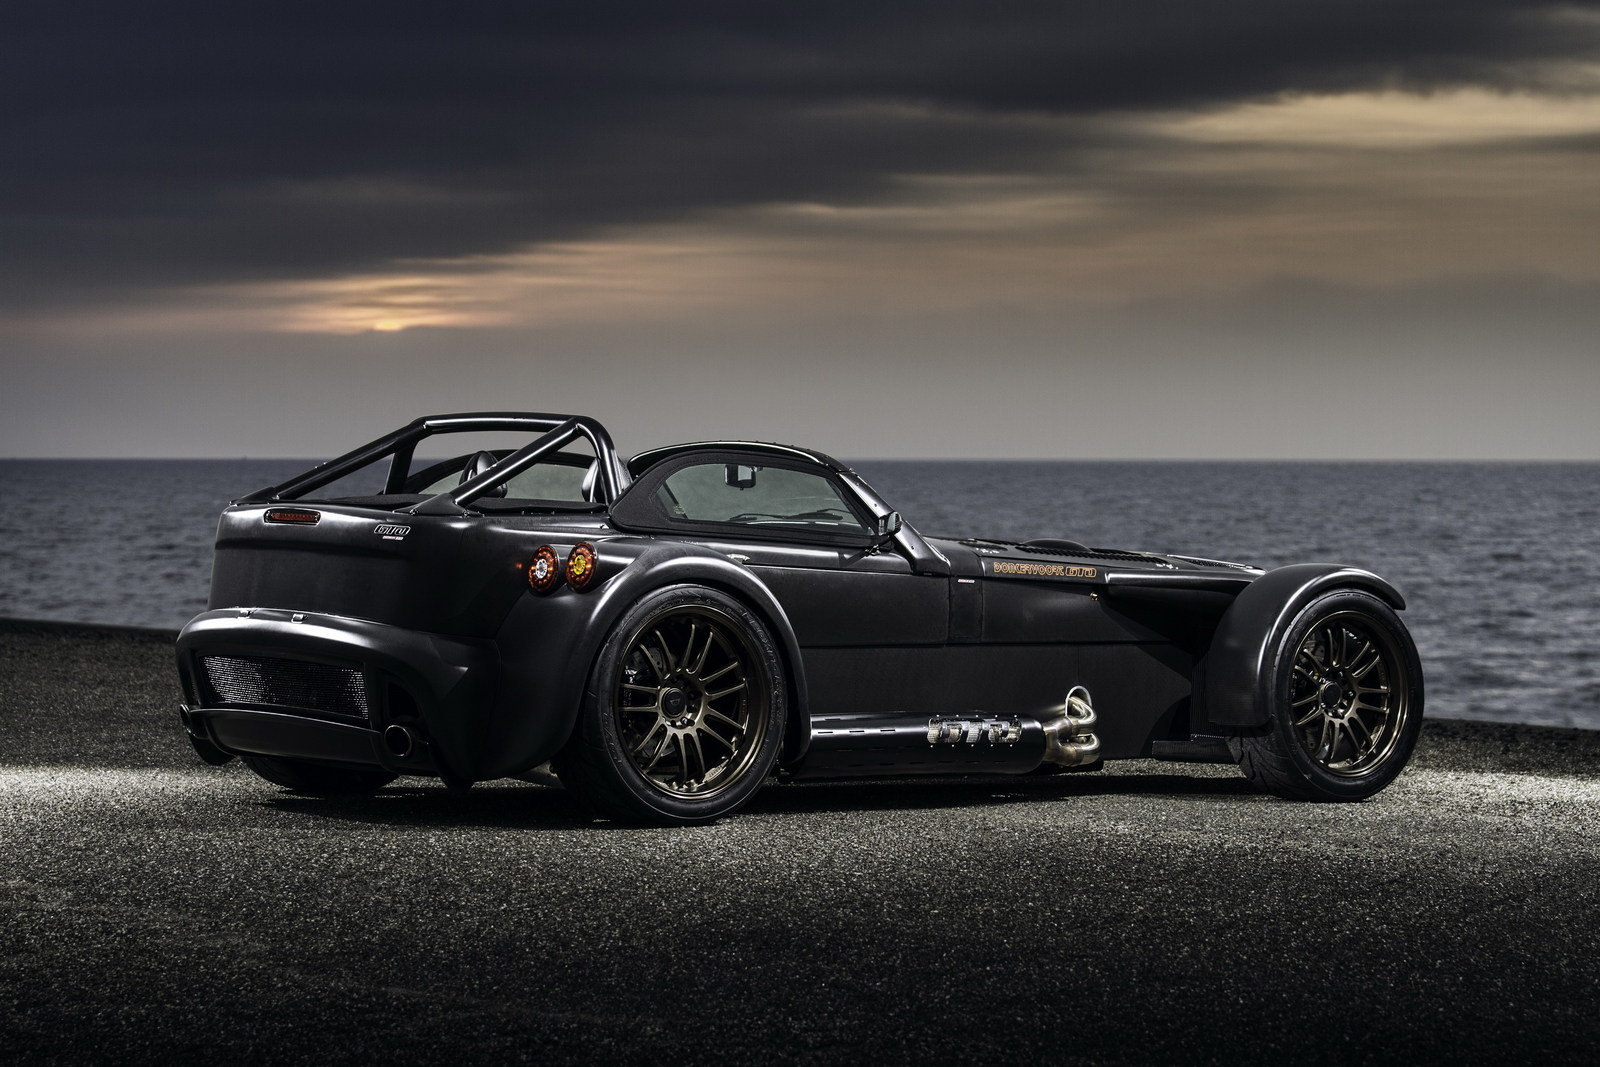 2015 donkervoort d8 gto bare naked carbon edition picture 627684 car review top speed. Black Bedroom Furniture Sets. Home Design Ideas